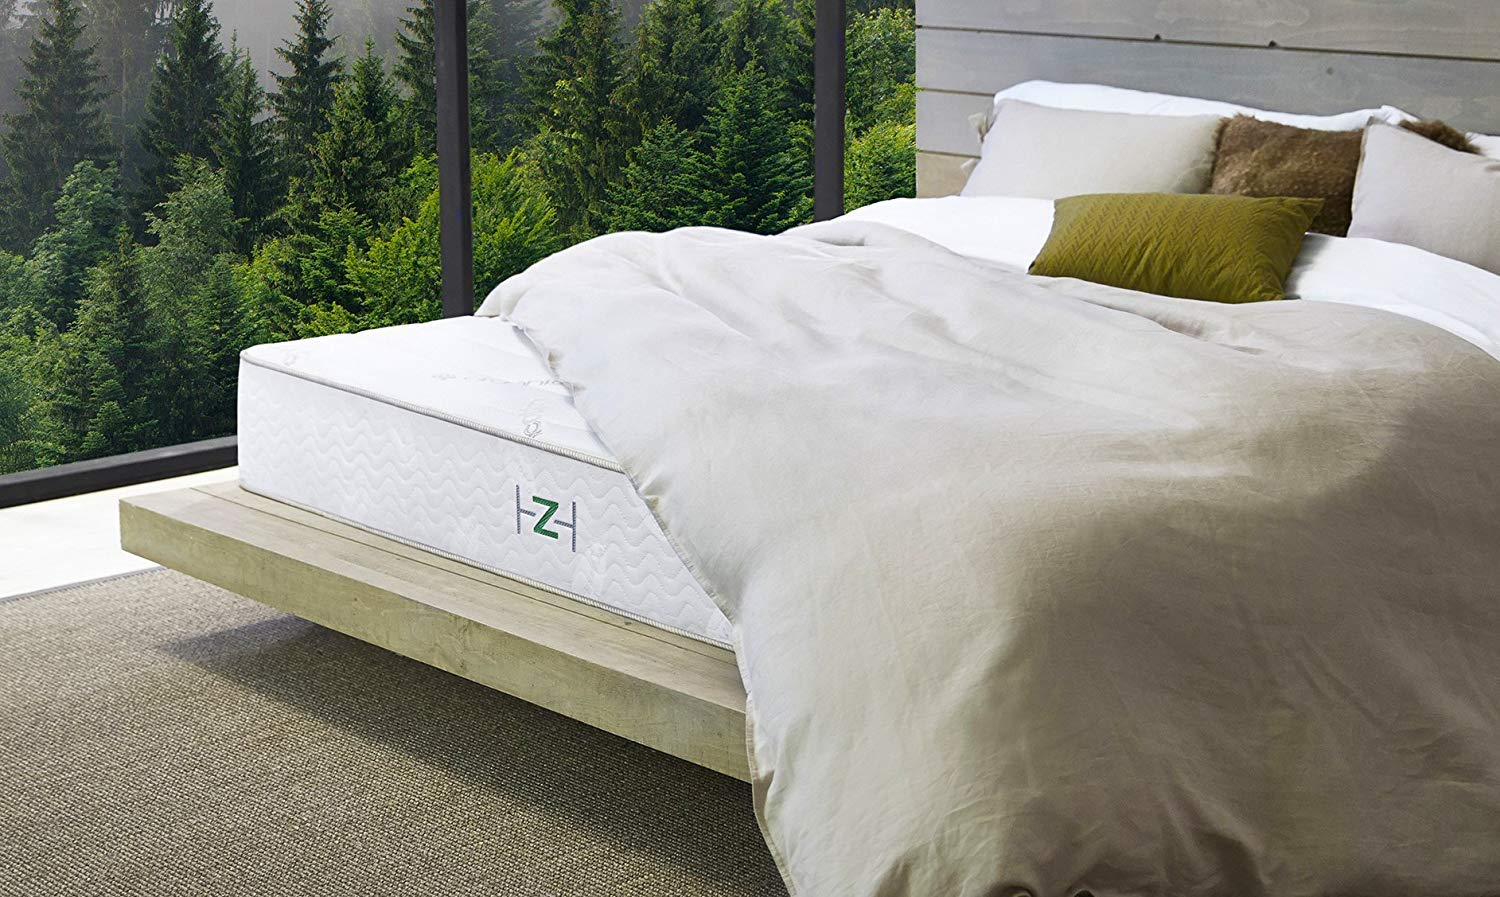 Zenhaven Luxury Mattress review by www.snoremagazine.com